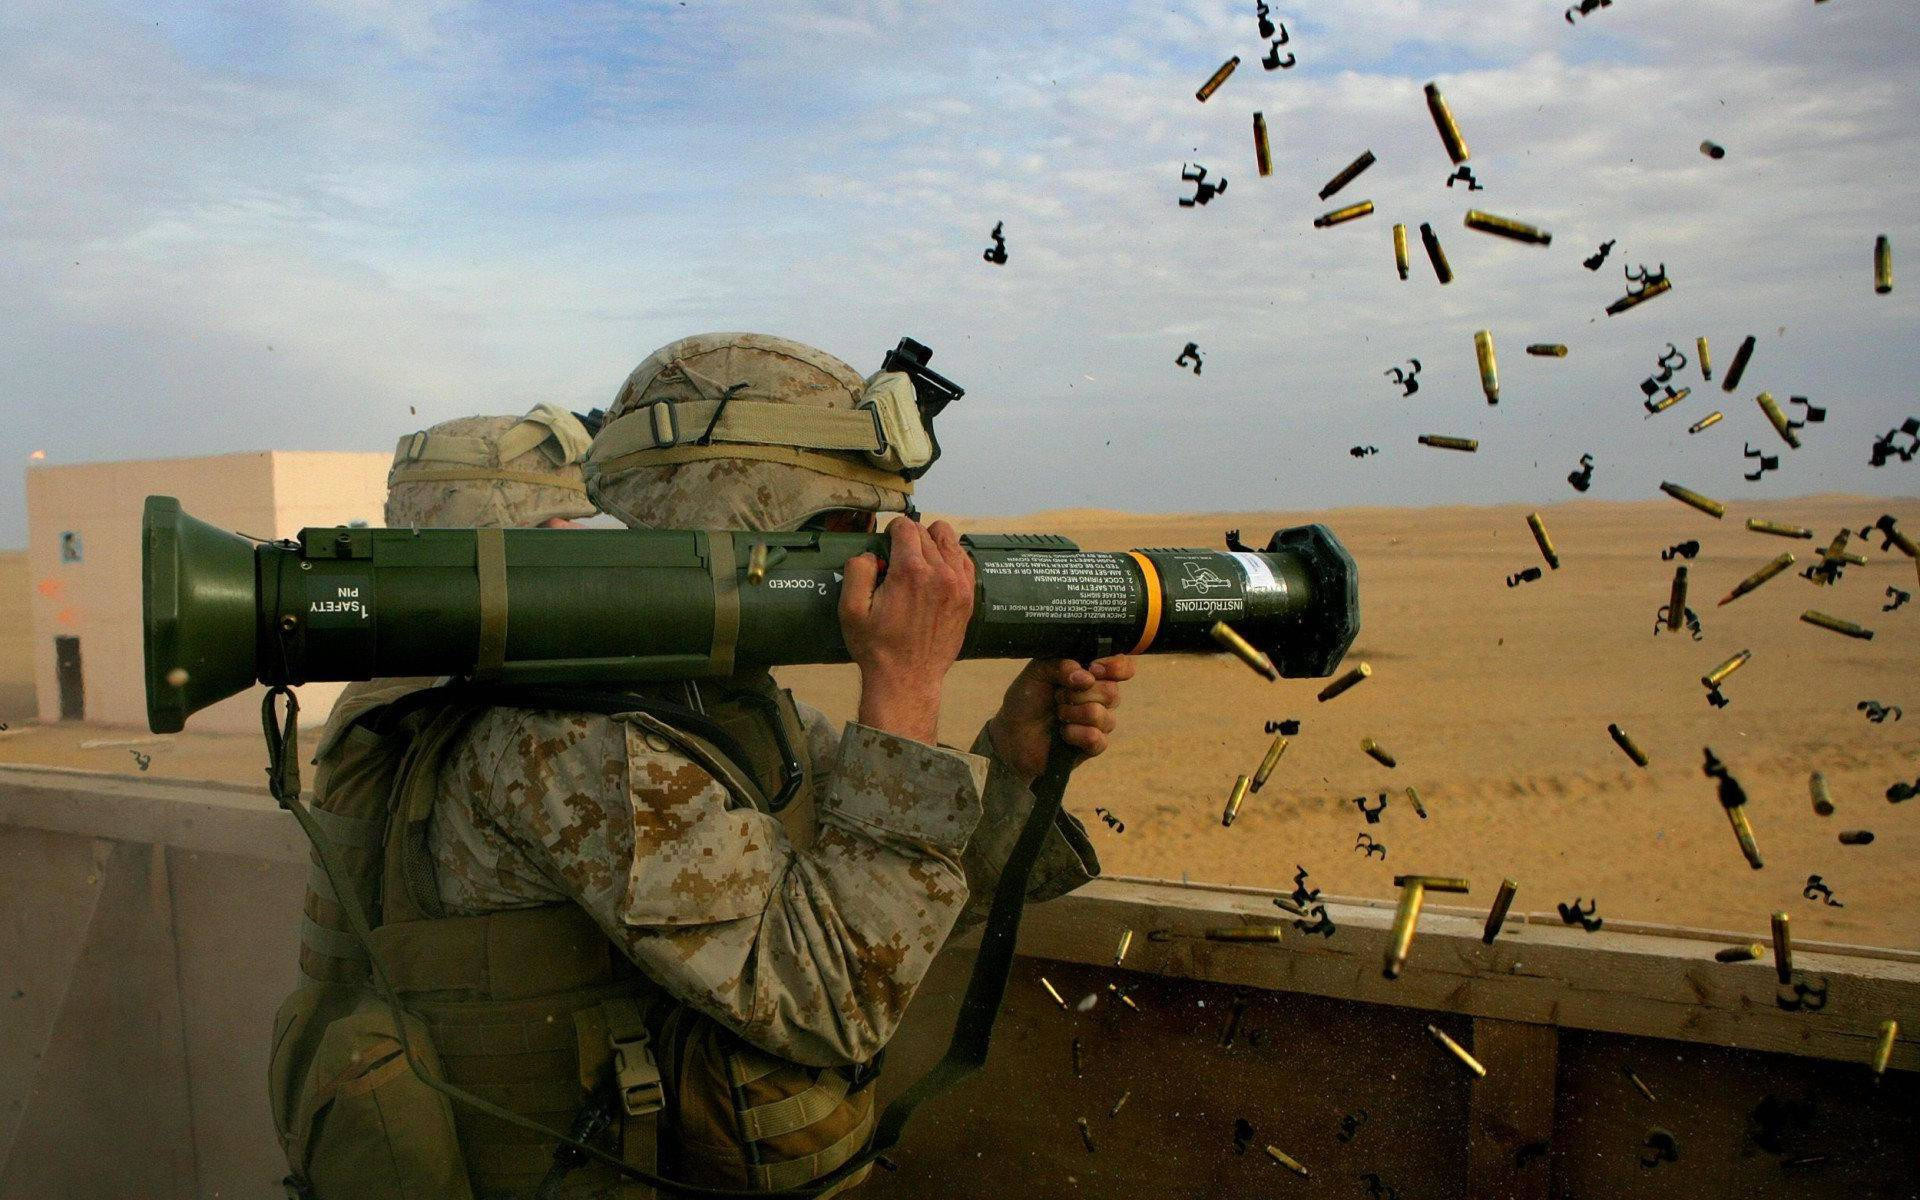 us soldiers in combat   Soldiers Wallpaper : Soldiers army Combat marines  rocket launcher .